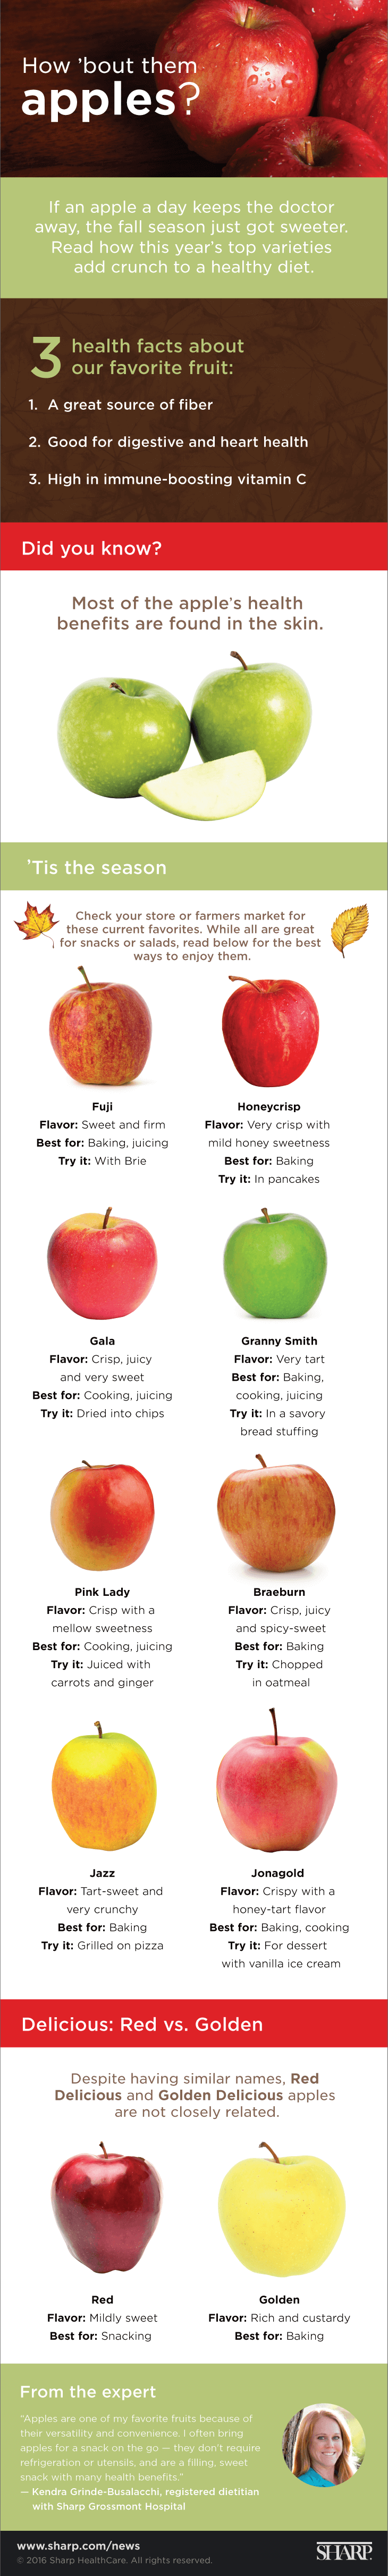 Apples infographic resize 051019 PNG